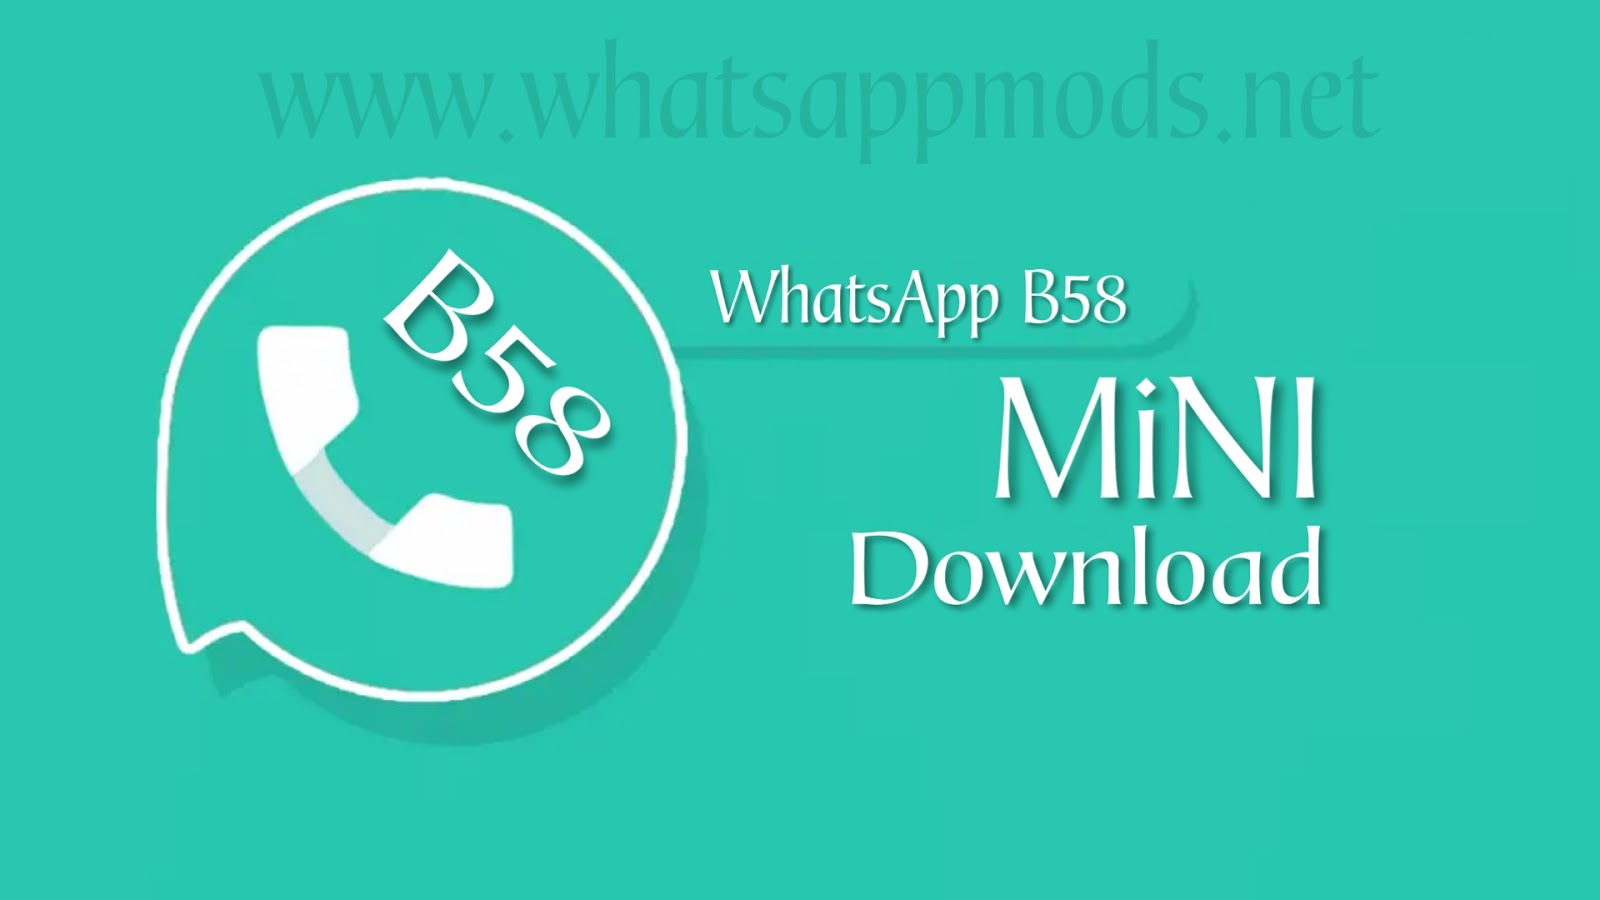 ,whatsapp web qr code, ,whatsapp gb, ,whatsapp paid version, ,faq whatsapp download apk, ,whatsapp instructions, ,j+@ in whatsapp, ,telegram web, ,whatsapp in computer, ,whatsapp video call, ,whatsapp for windows 7 32-bit, ,online whatsapp number, ,whatsapp app store, ,whatsapp for ipad without iphone, ,appkasan, ,b whatsapp, ,whatsapp news alert today, ,whatsapp problems today, ,chat for business, ,whatsapp inc., ,whatsapp for ipad, ,go whatsapp download uptodown, ,focus whatsapp download, ,whatsapp doe, ,whatsapp business download, ,java whatsapp download, ,fast whatsapp, ,whatsapp owner, ,brian acton, ,facebook which country app, ,jan koum girlfriend, ,jan koum house,